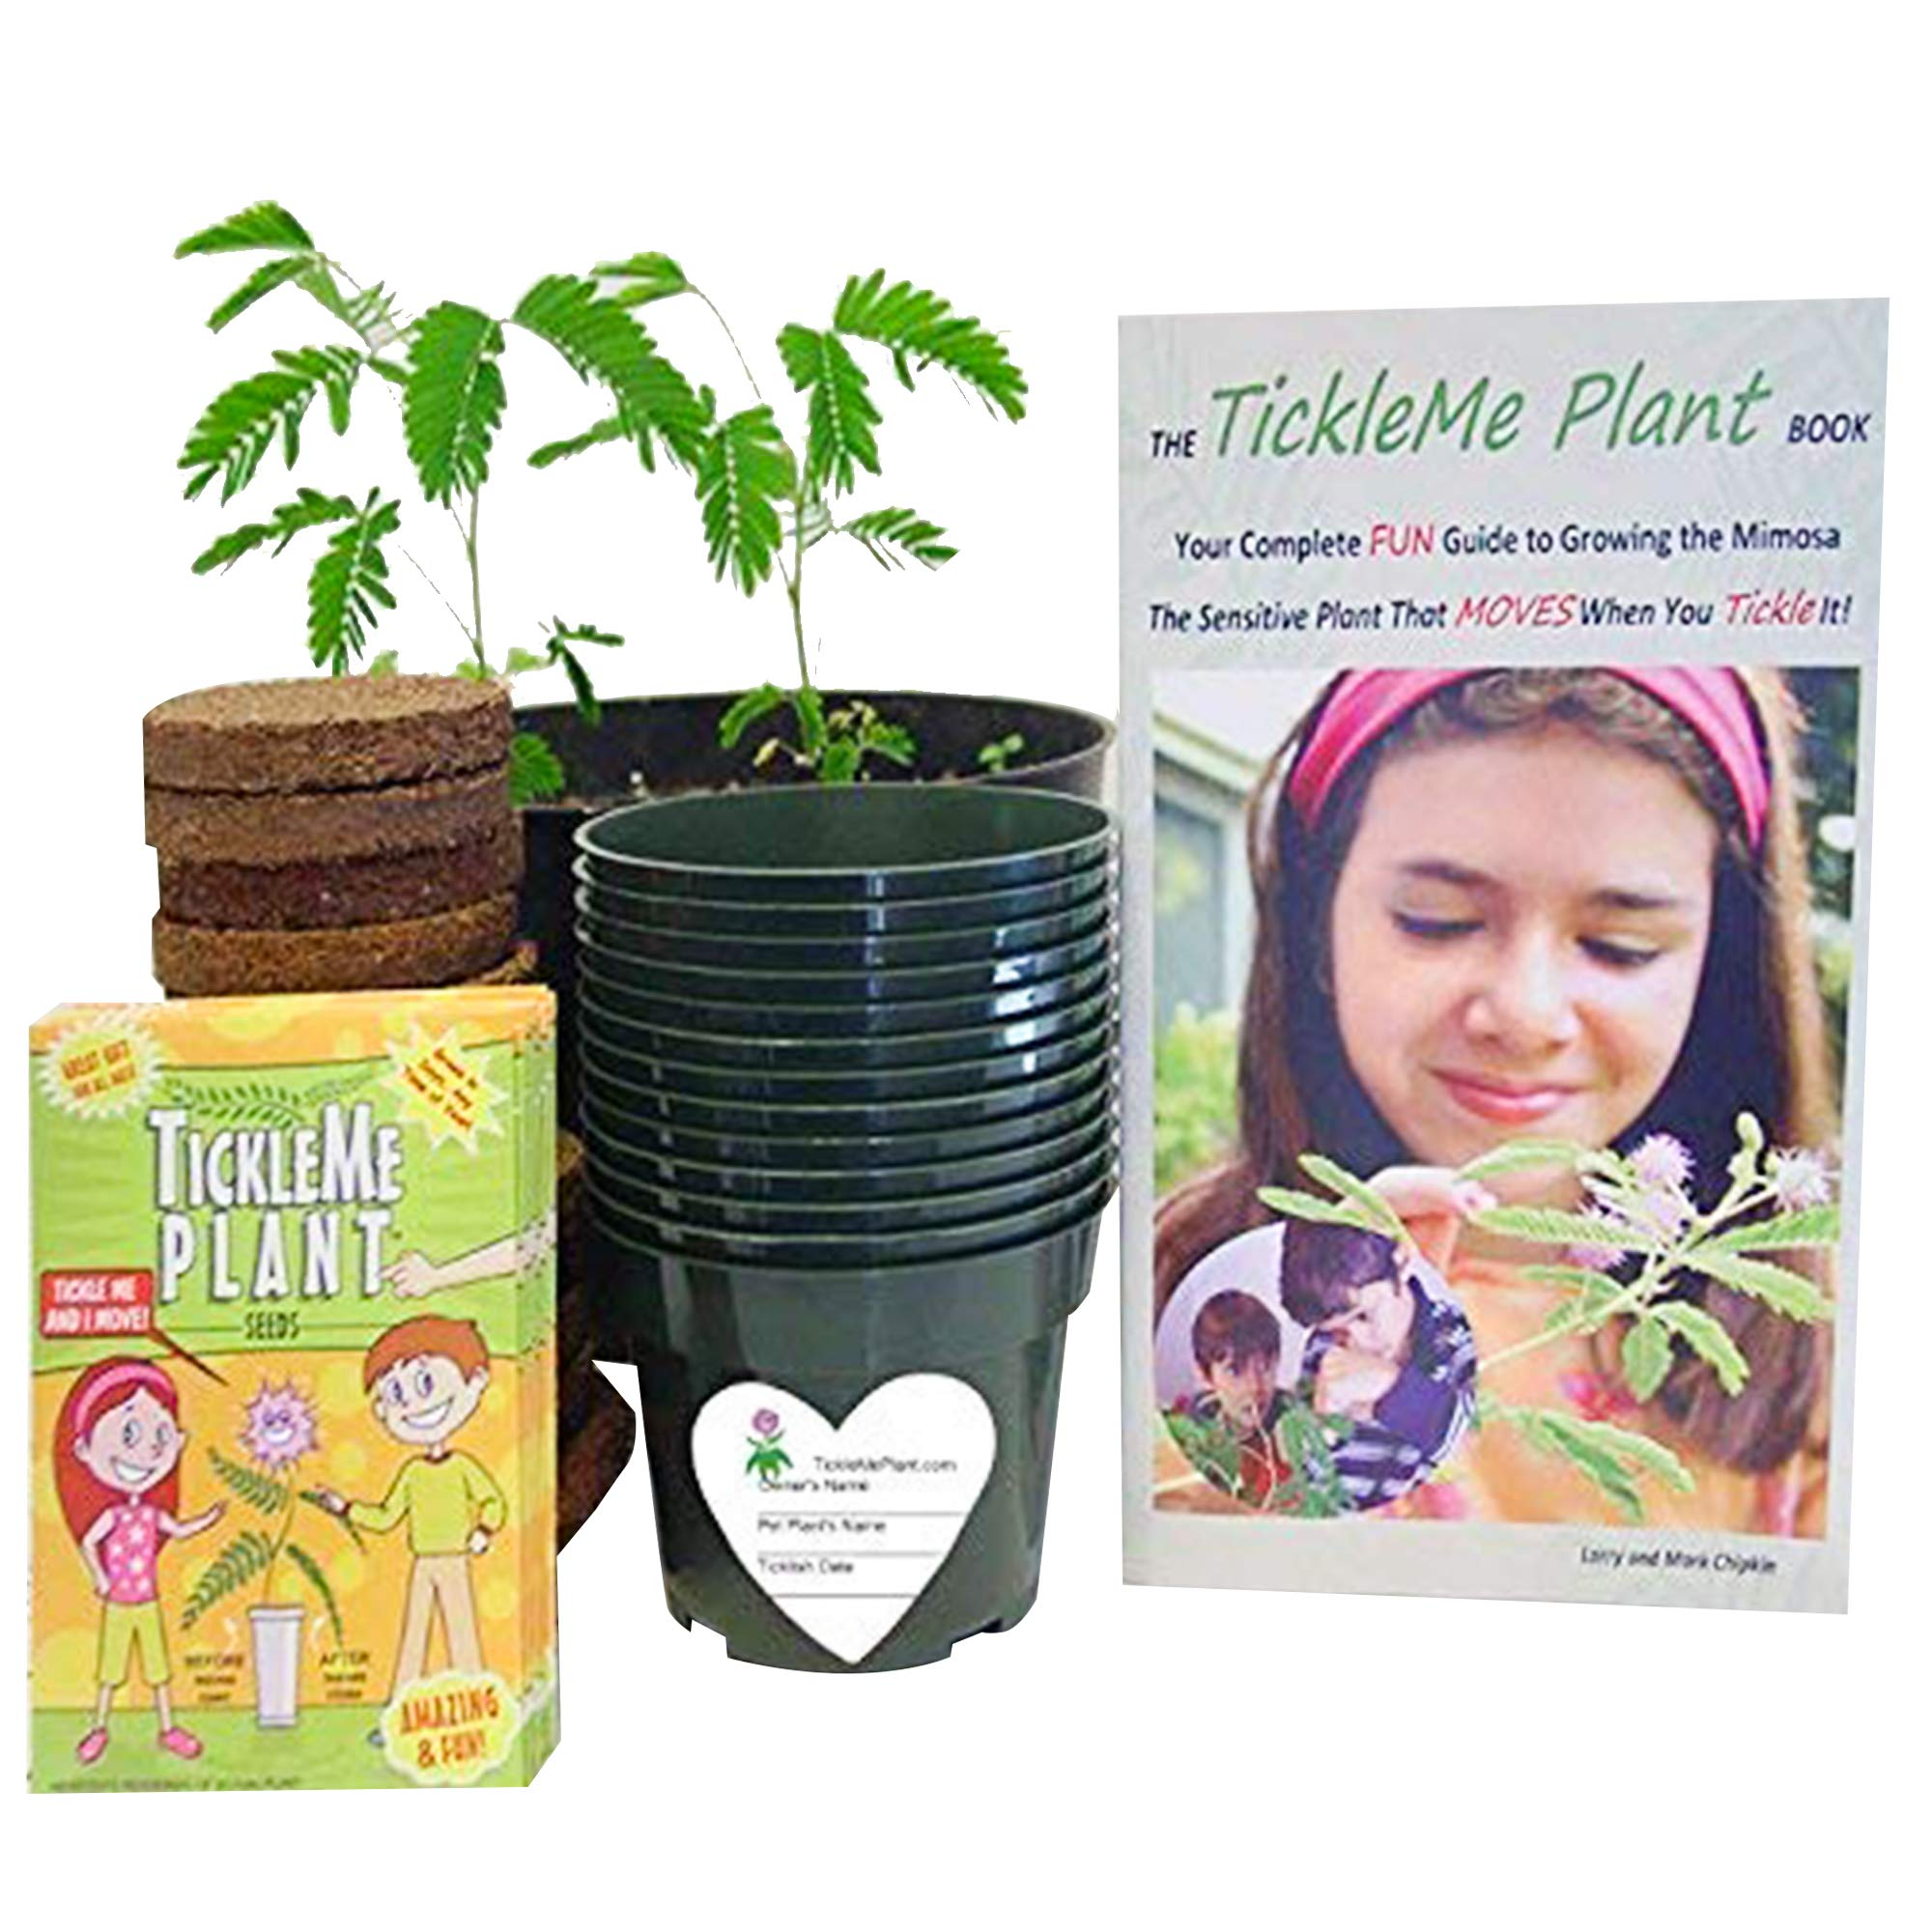 TickleMe Plant Classroom or Science Party kit - Grow The House Plant That Closes Its Leaves When You Tickle It. Includes Activity Book - Supplies for 30 Students by TickleMe Plant